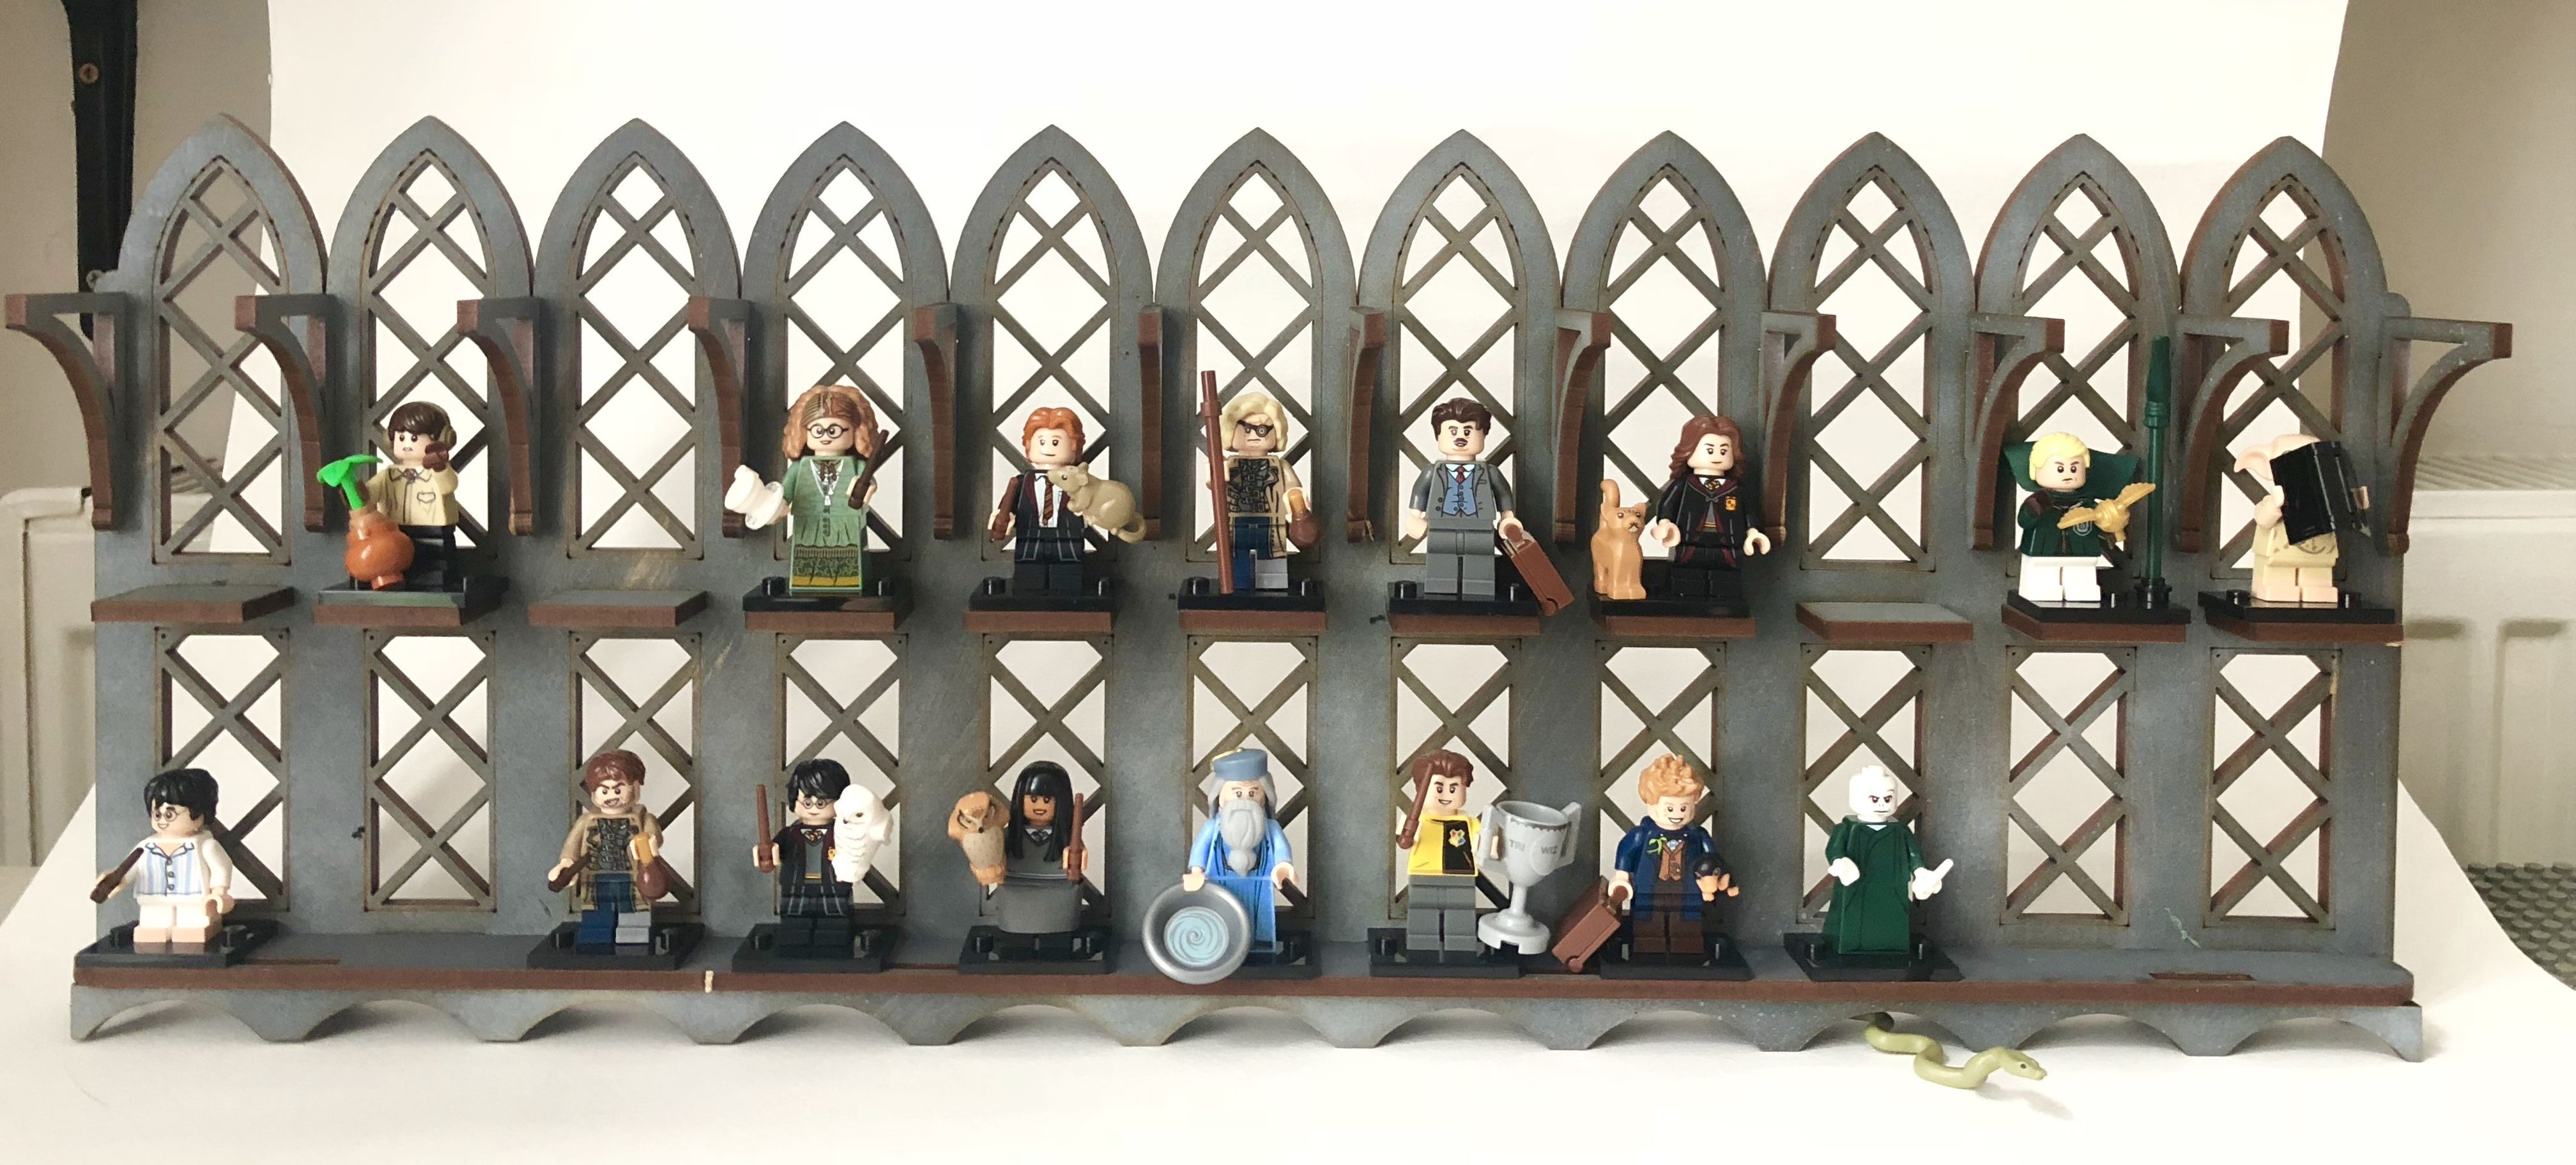 Image Result For Lego Display Case Harry Potter Lego Display Case Lego Display Lego Minifigure Display